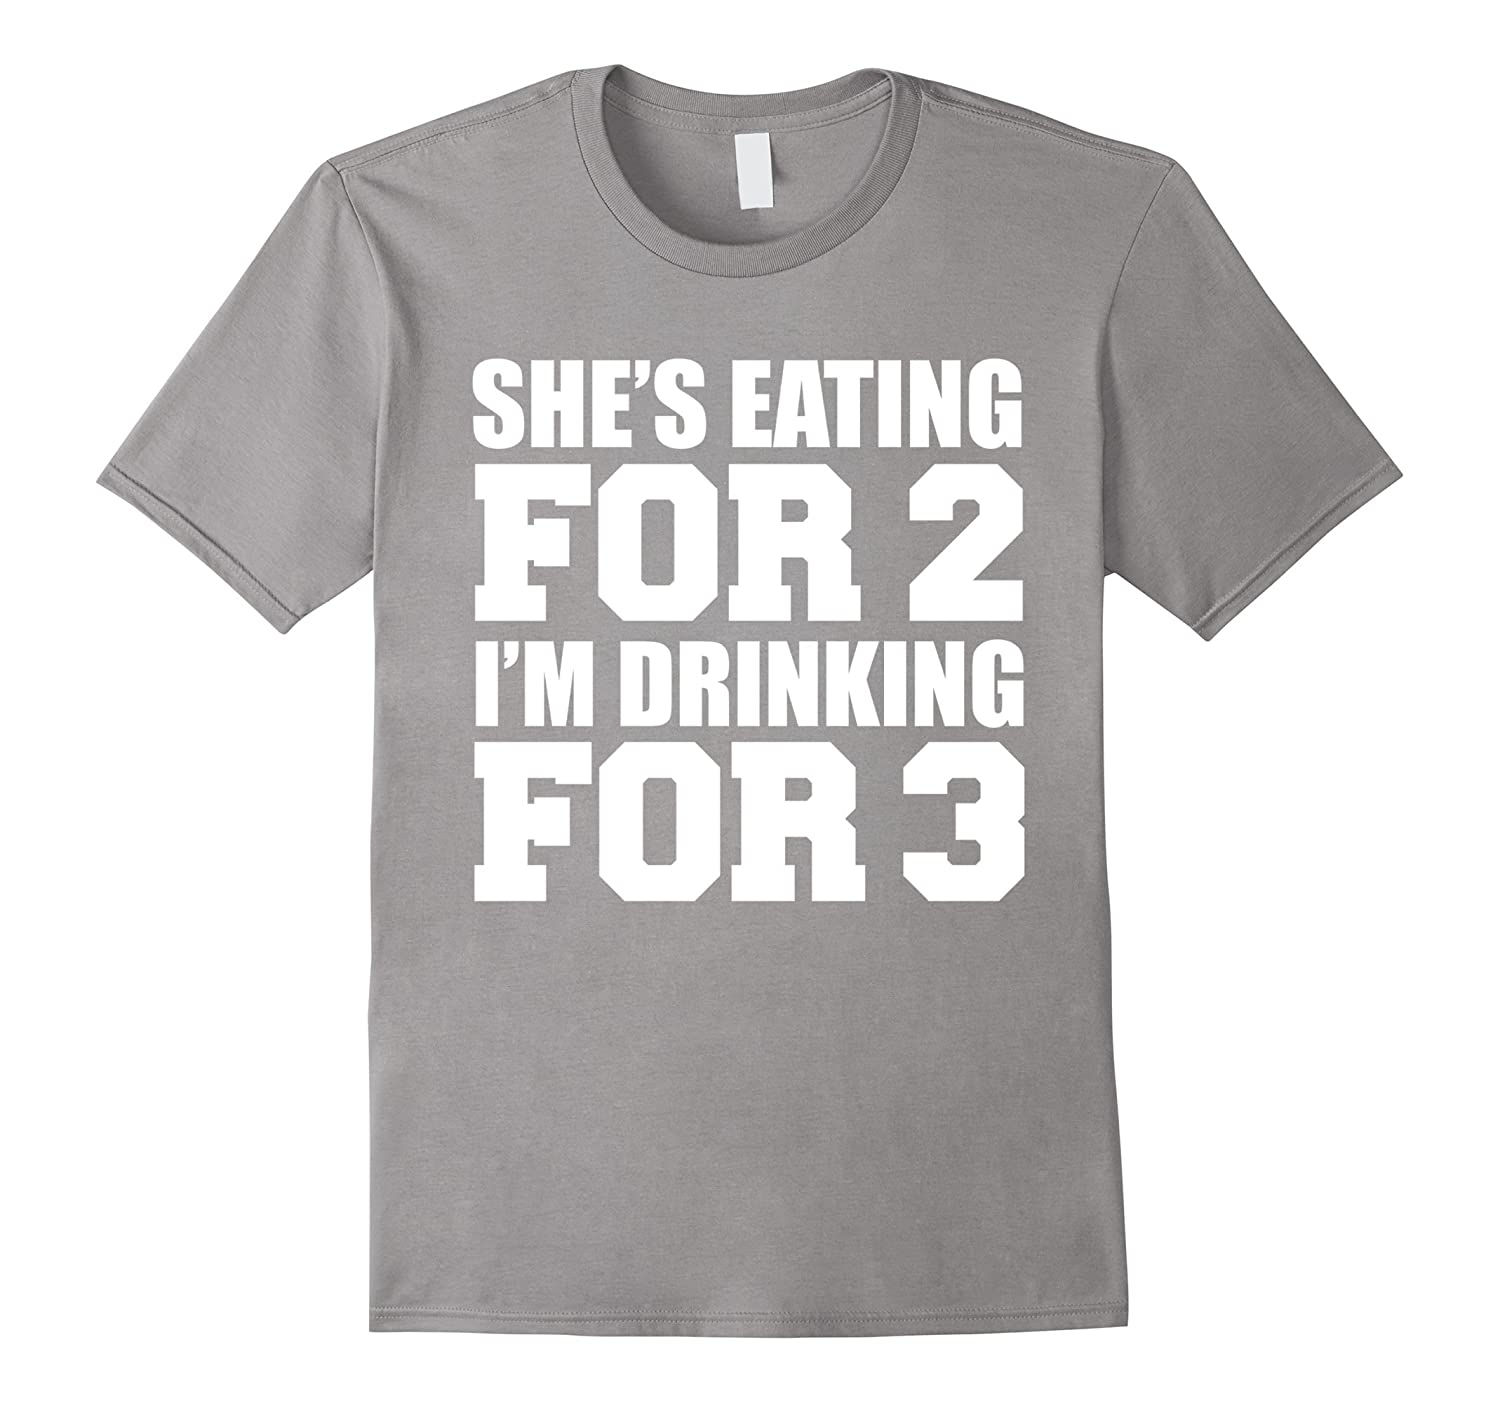 Shes Eating for 2 Im Drinking for 3 t-shirt dad to be gift-TH